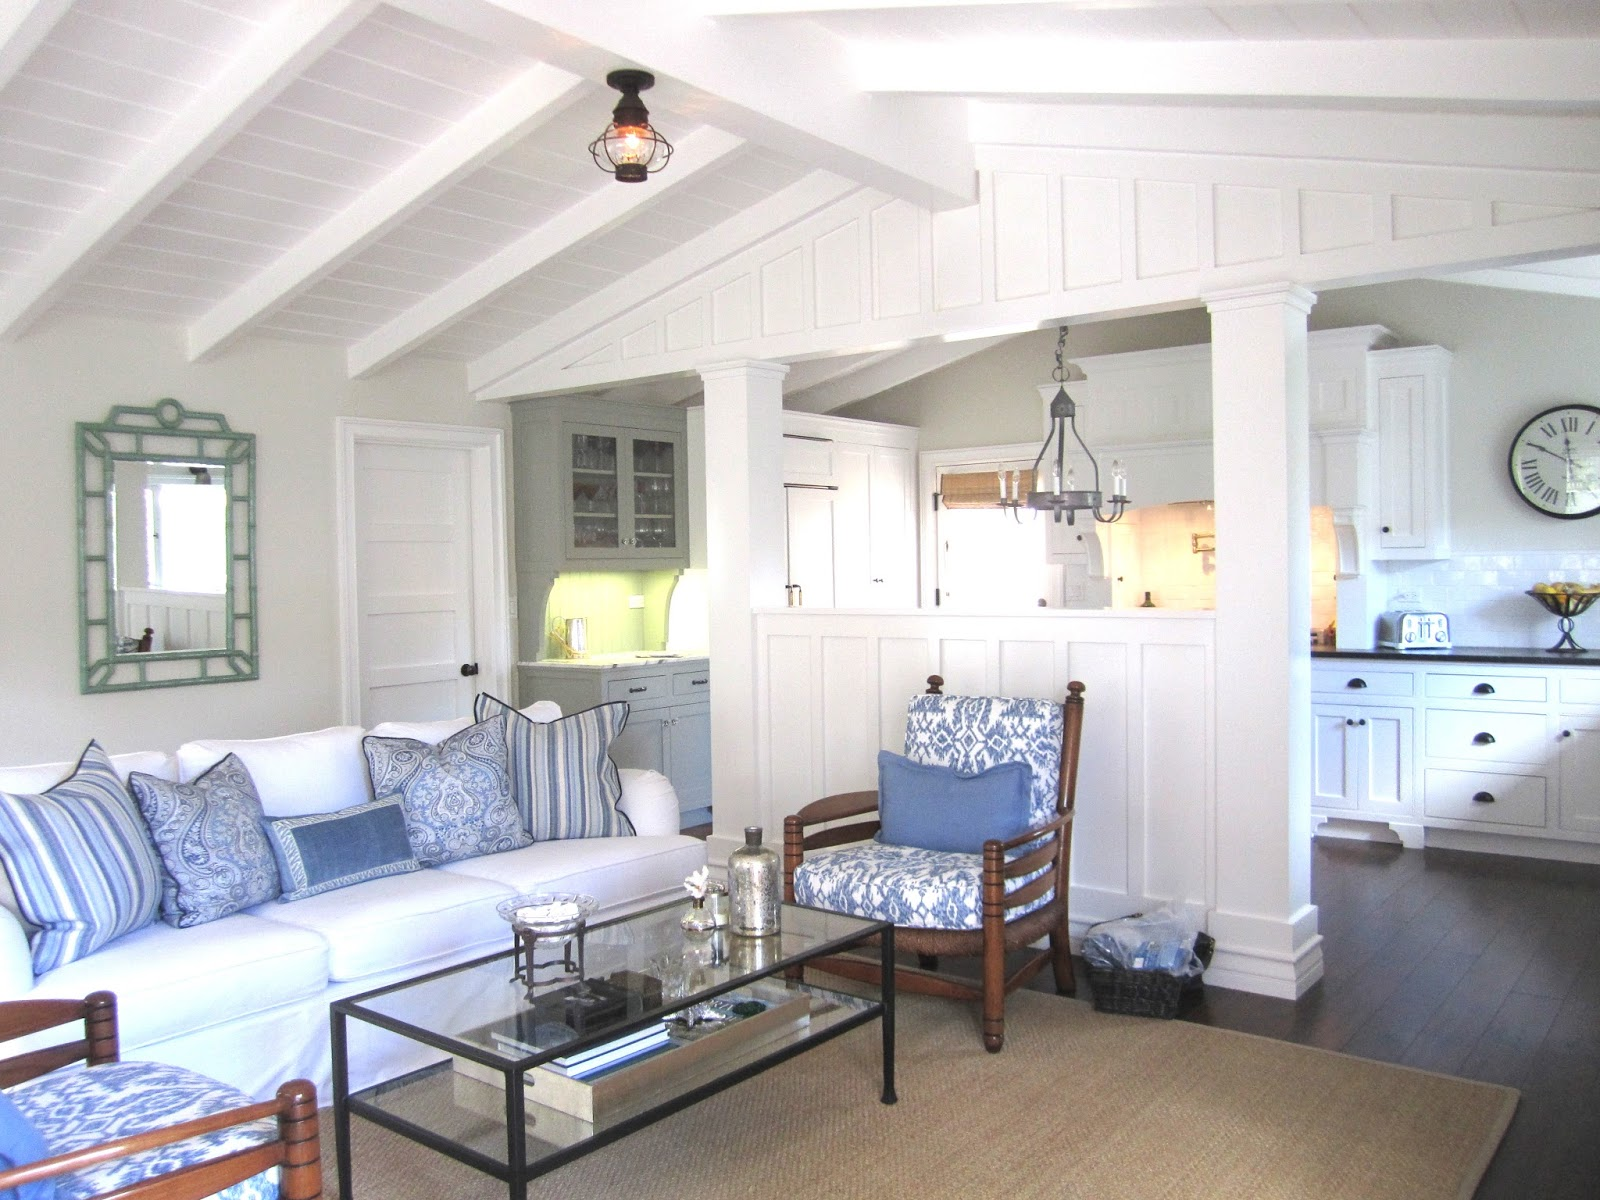 classic • casual • home Blue and White Casual Beach Cottage